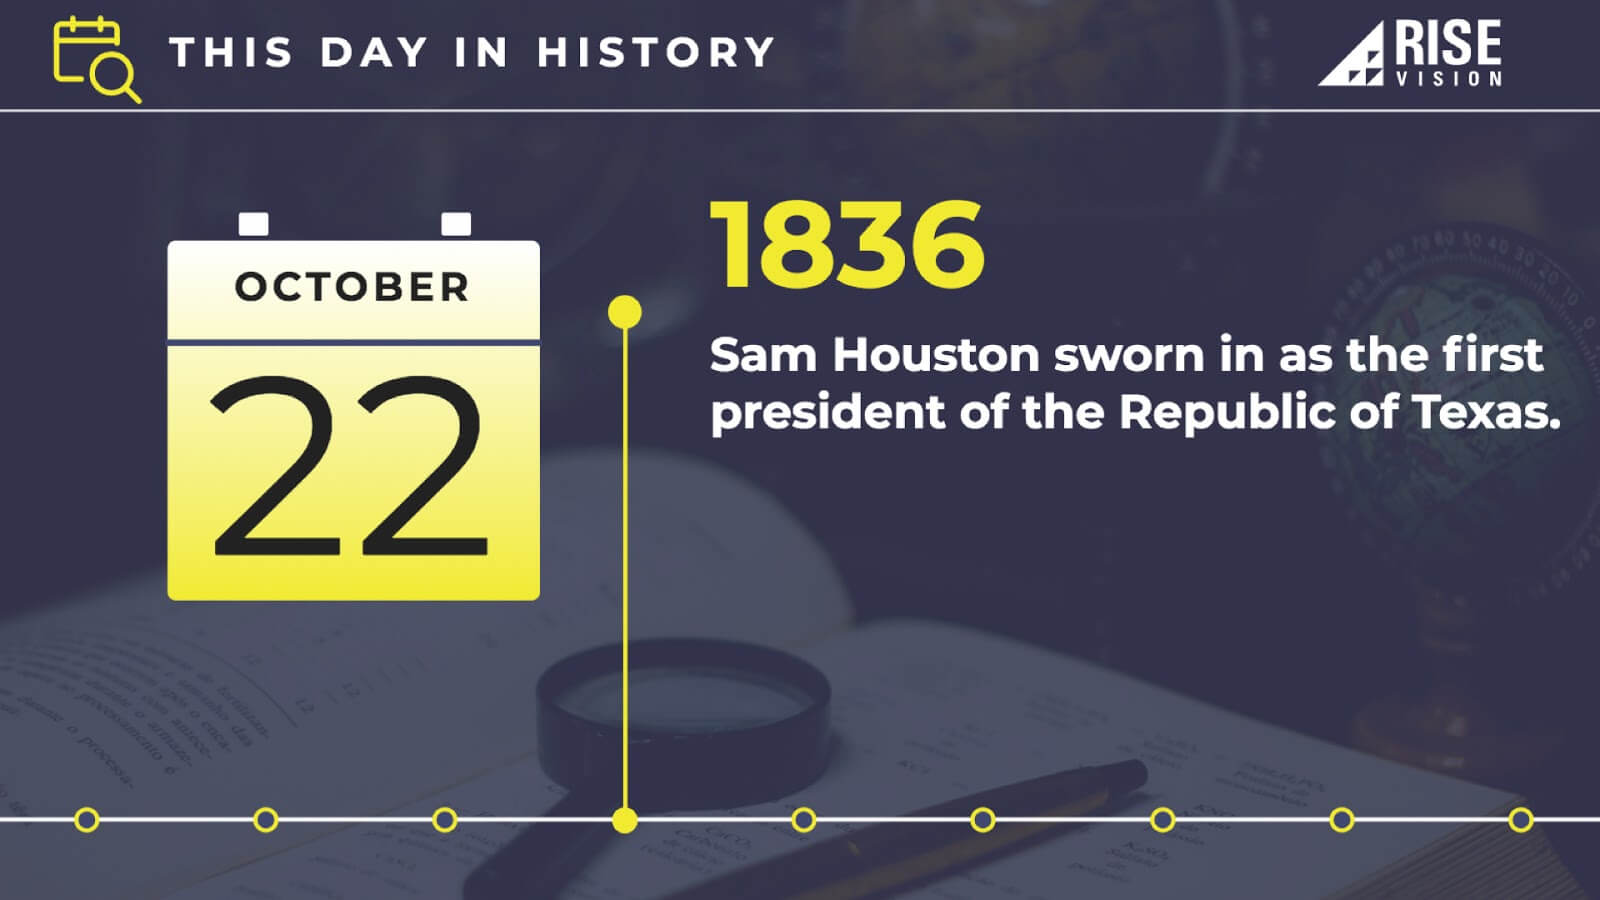 historical facts digital signage template